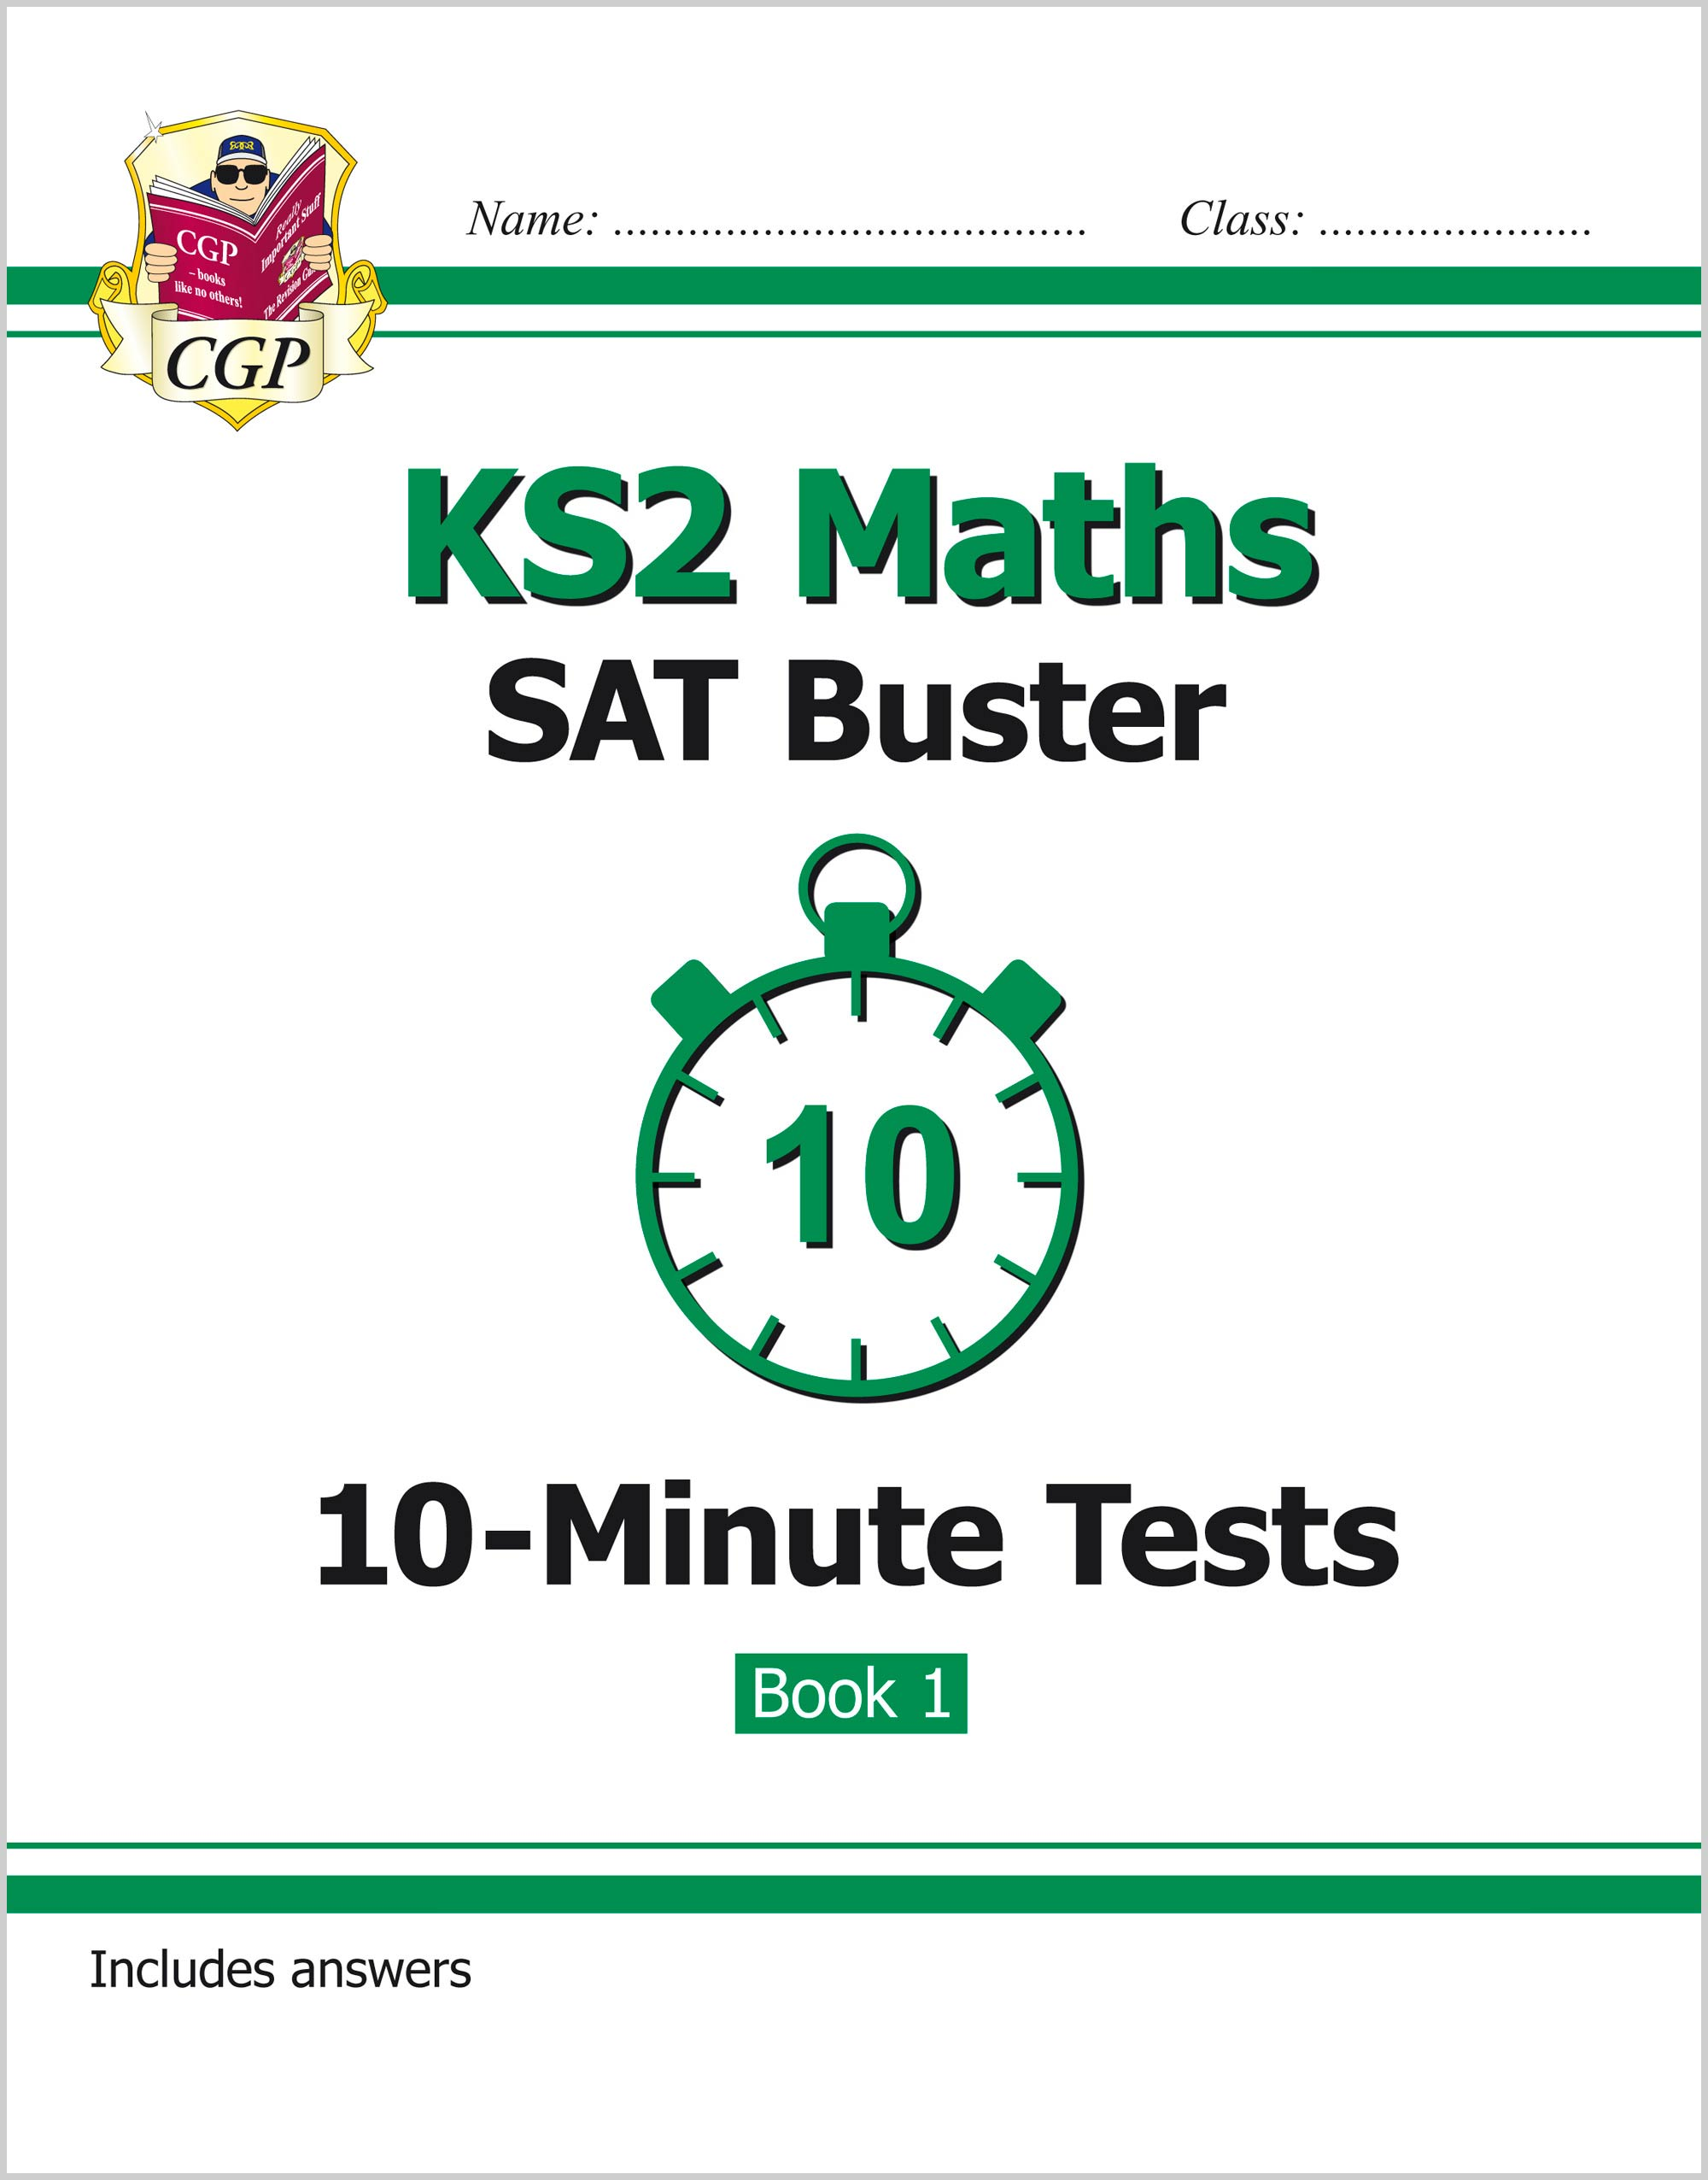 MXP22 - KS2 Maths SAT Buster: 10-Minute Tests Maths - Book 1 (for tests in 2018 and beyond)